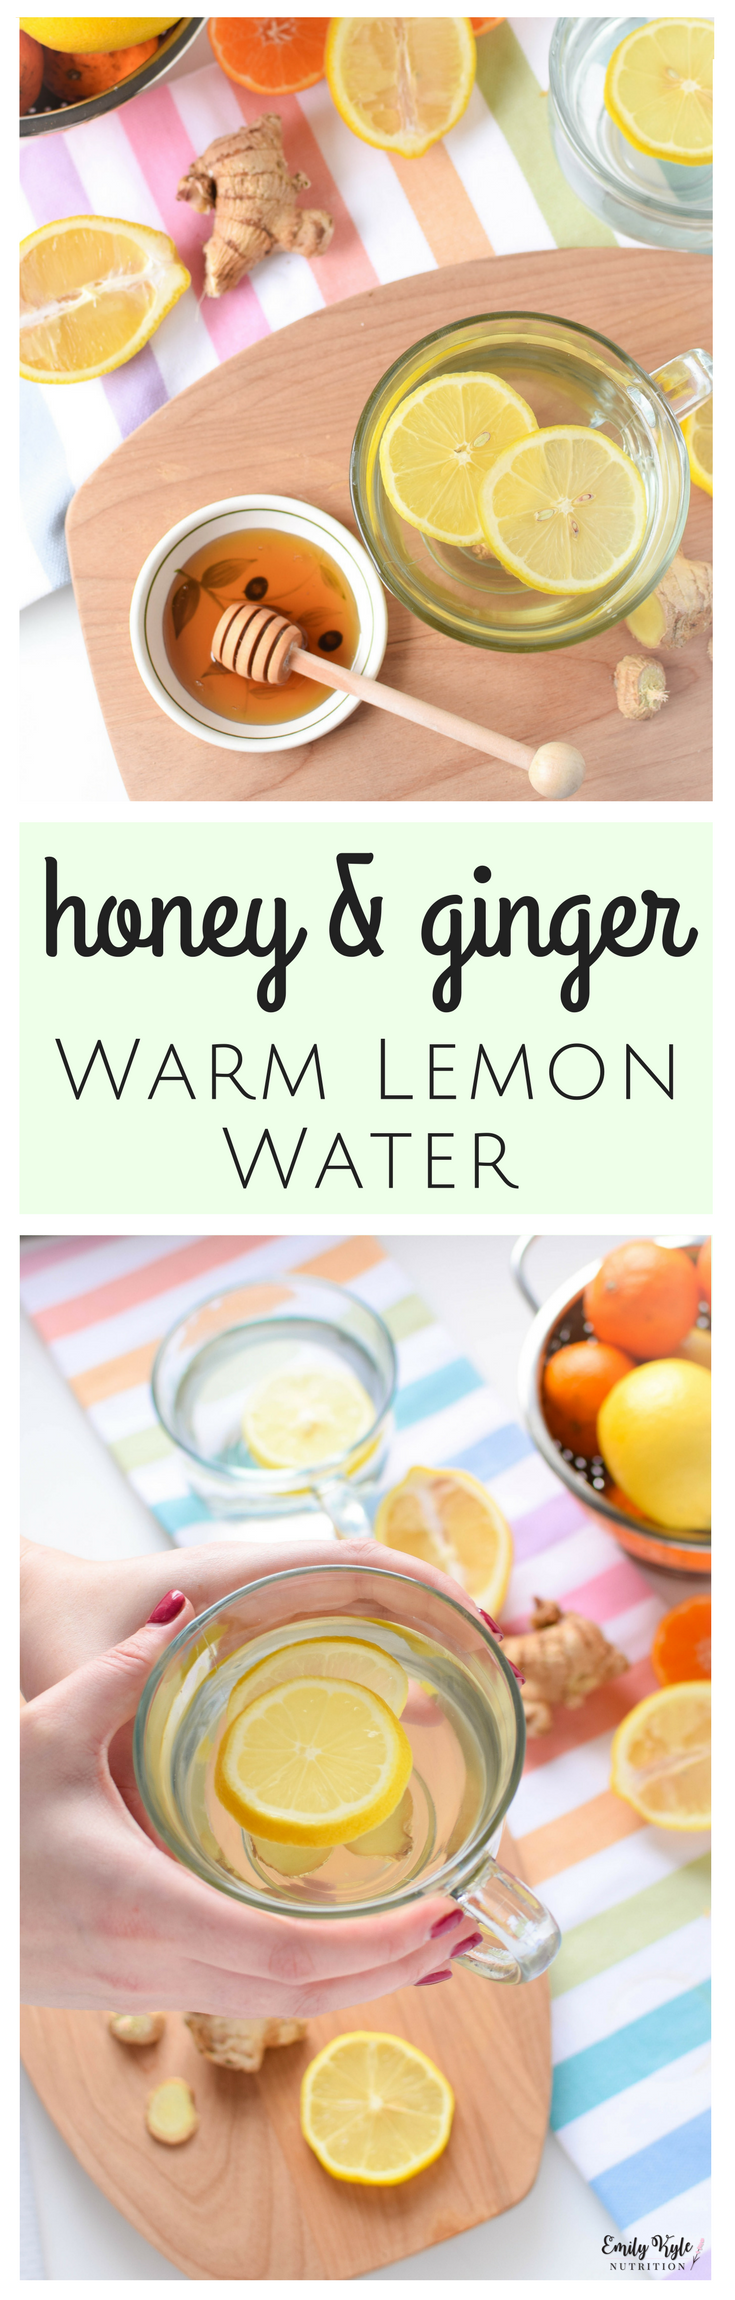 Stay hydrated and give your immune system a gentle boost to fend off common winter ailments with this naturally soothing Honey & Ginger Warm Lemon Water.